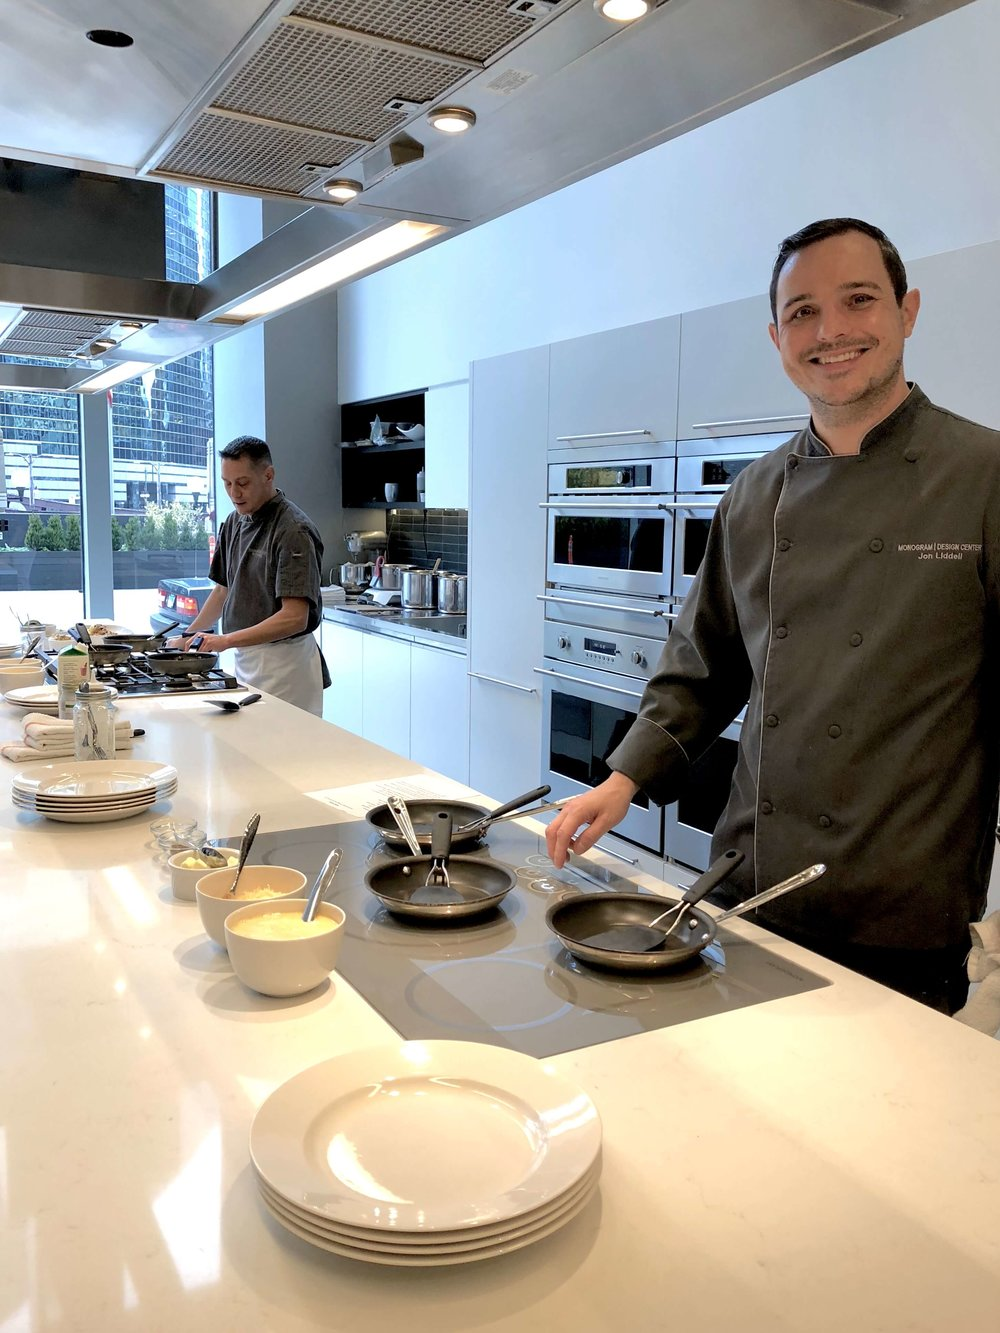 Chef Jon at the Chicago Monogram Appliances showroom, demonstrating how to improve your cooking skills using these luxury kitchen appliances. #monogramappliances #inductioncooking #kitchendesigner #kitchendesign